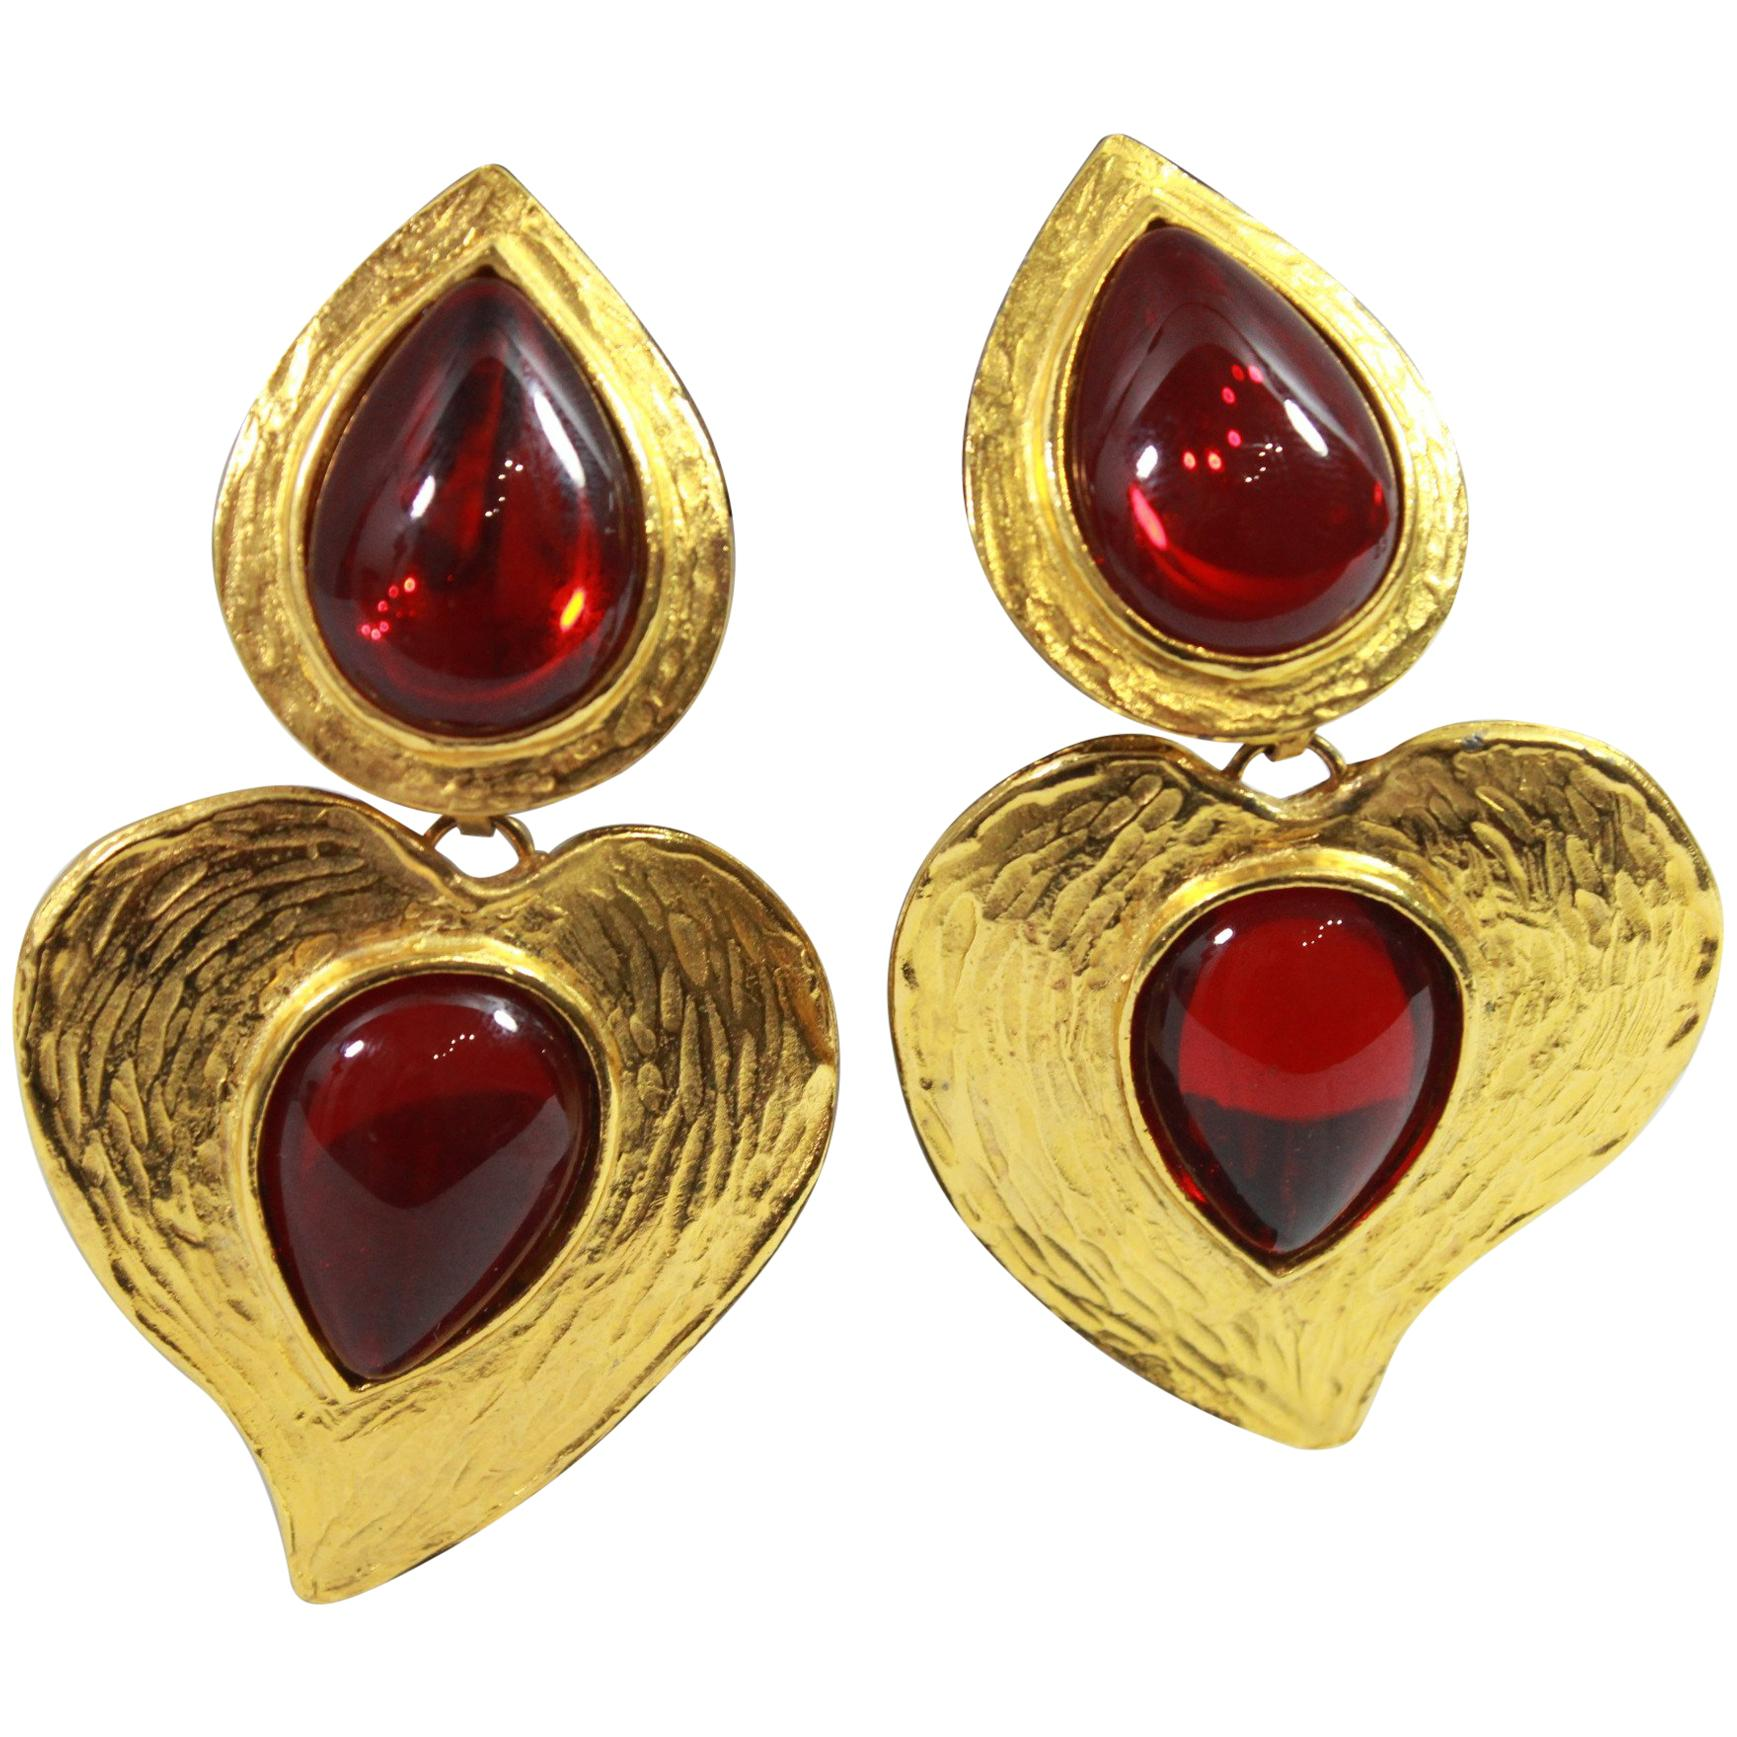 4e6b6e4aed7 Vintage Yves Saint Laurent Earrings - 186 For Sale at 1stdibs